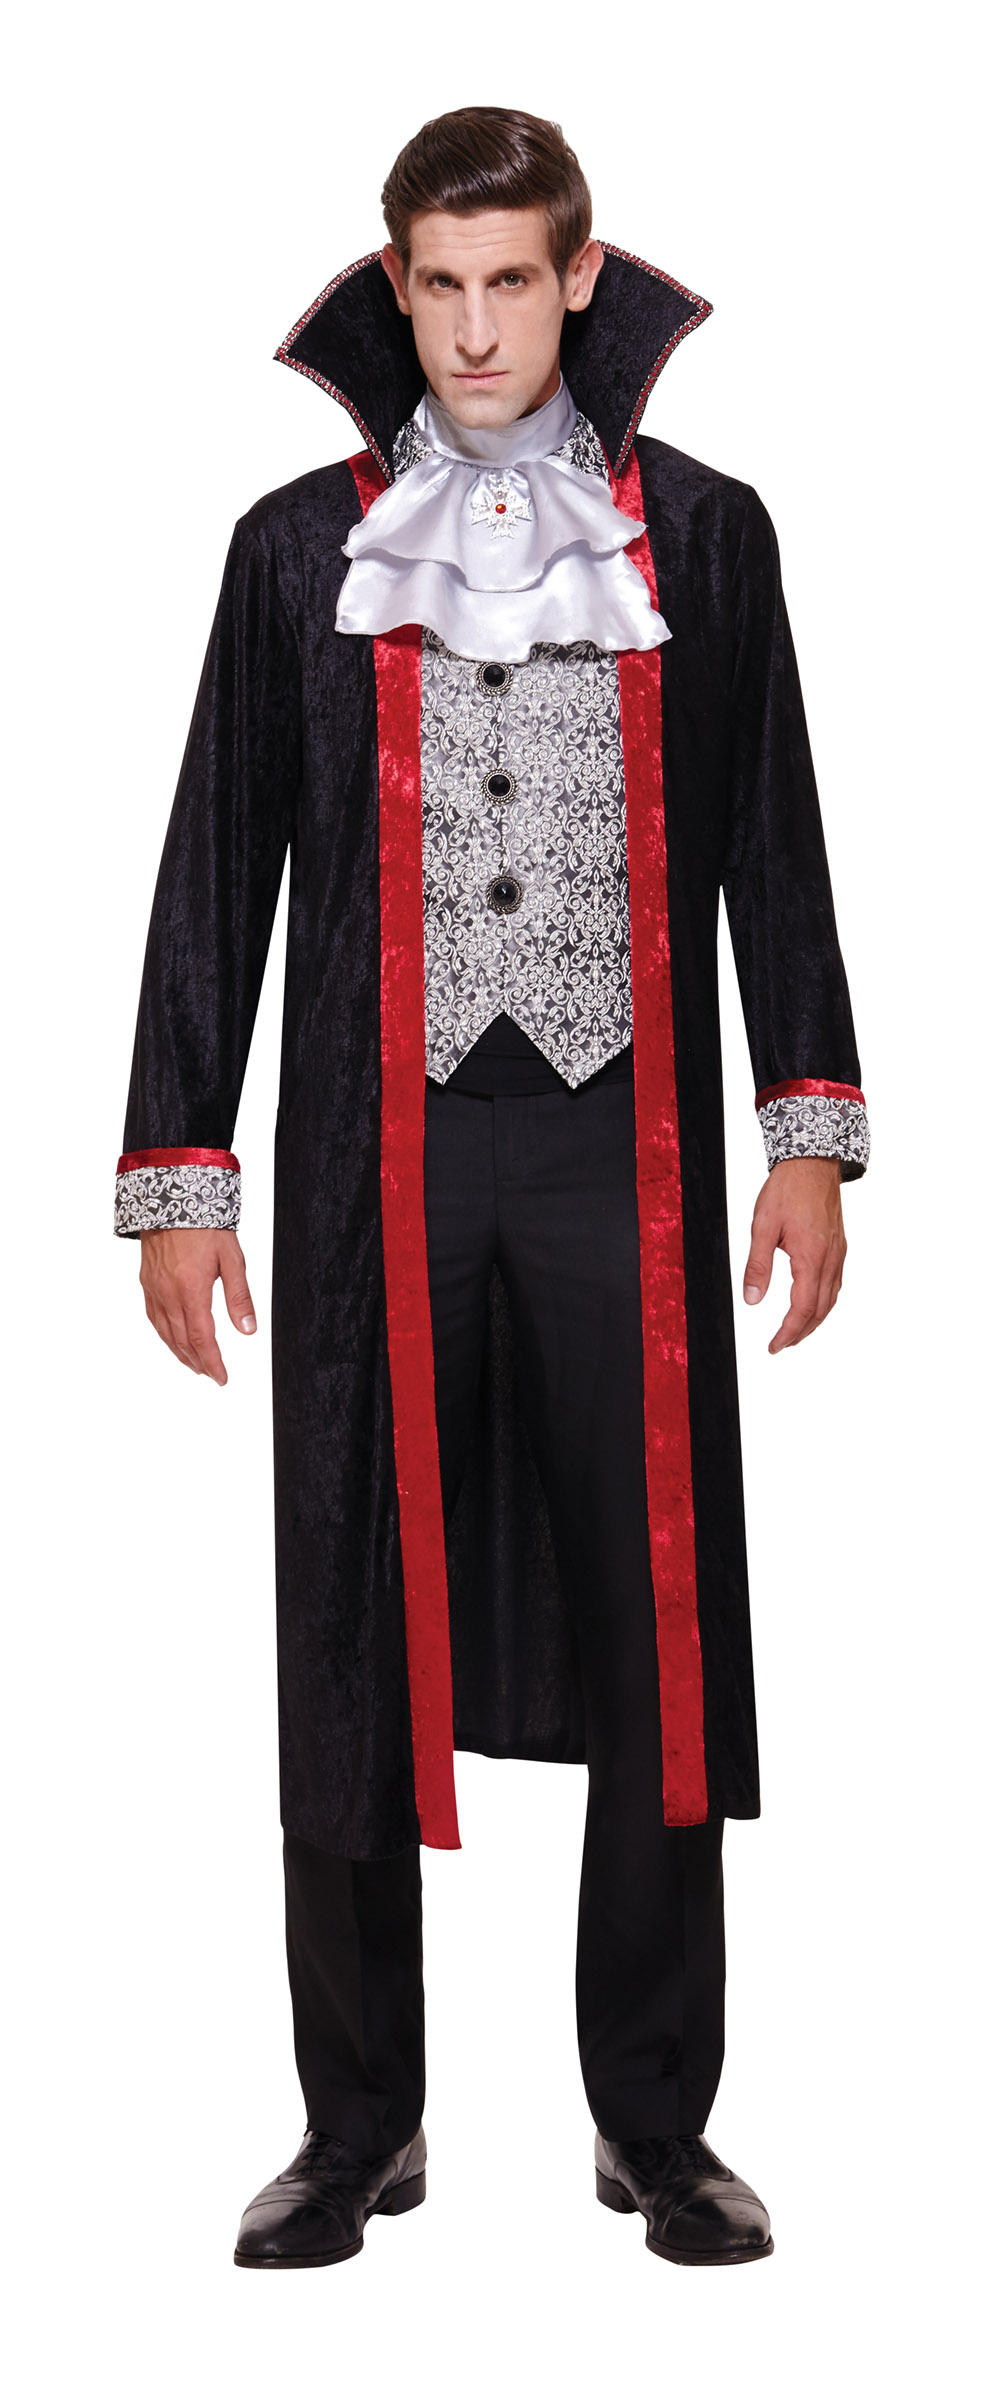 Online Shopping For Halloween Costumes